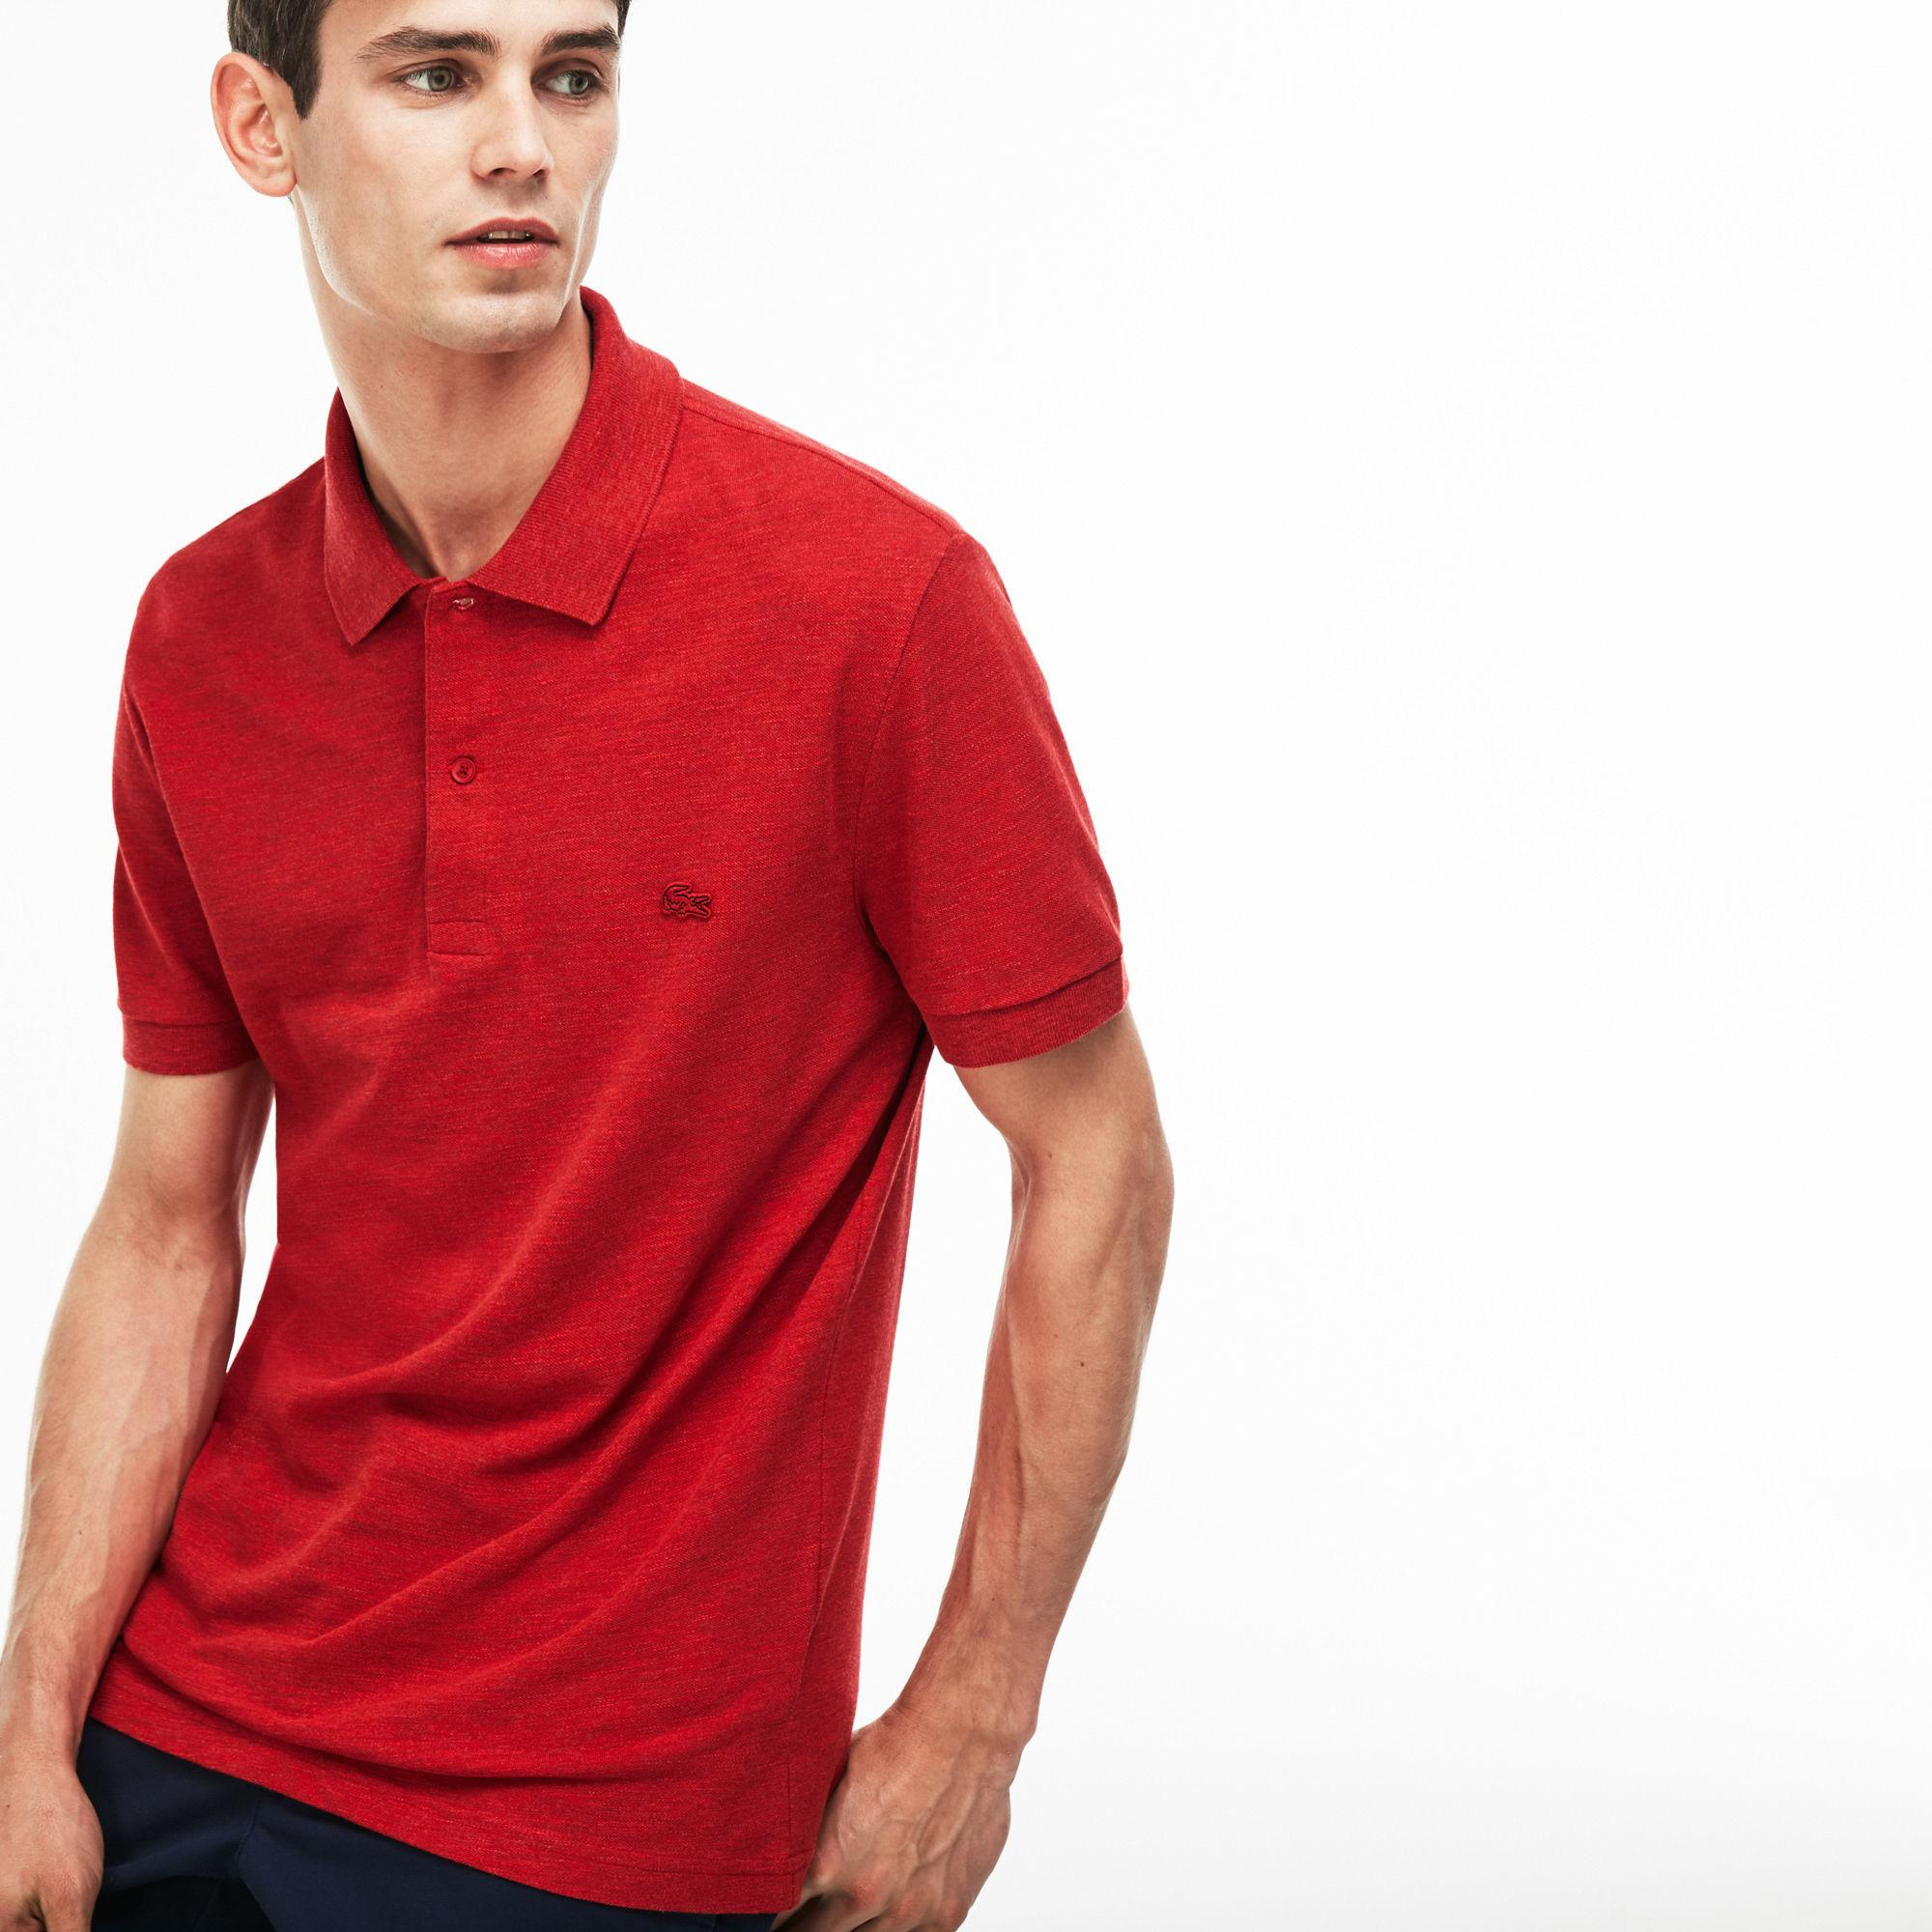 3028410c7cbd0 Lyst - Lacoste Regular Fit Cotton Piqué Polo in Red for Men